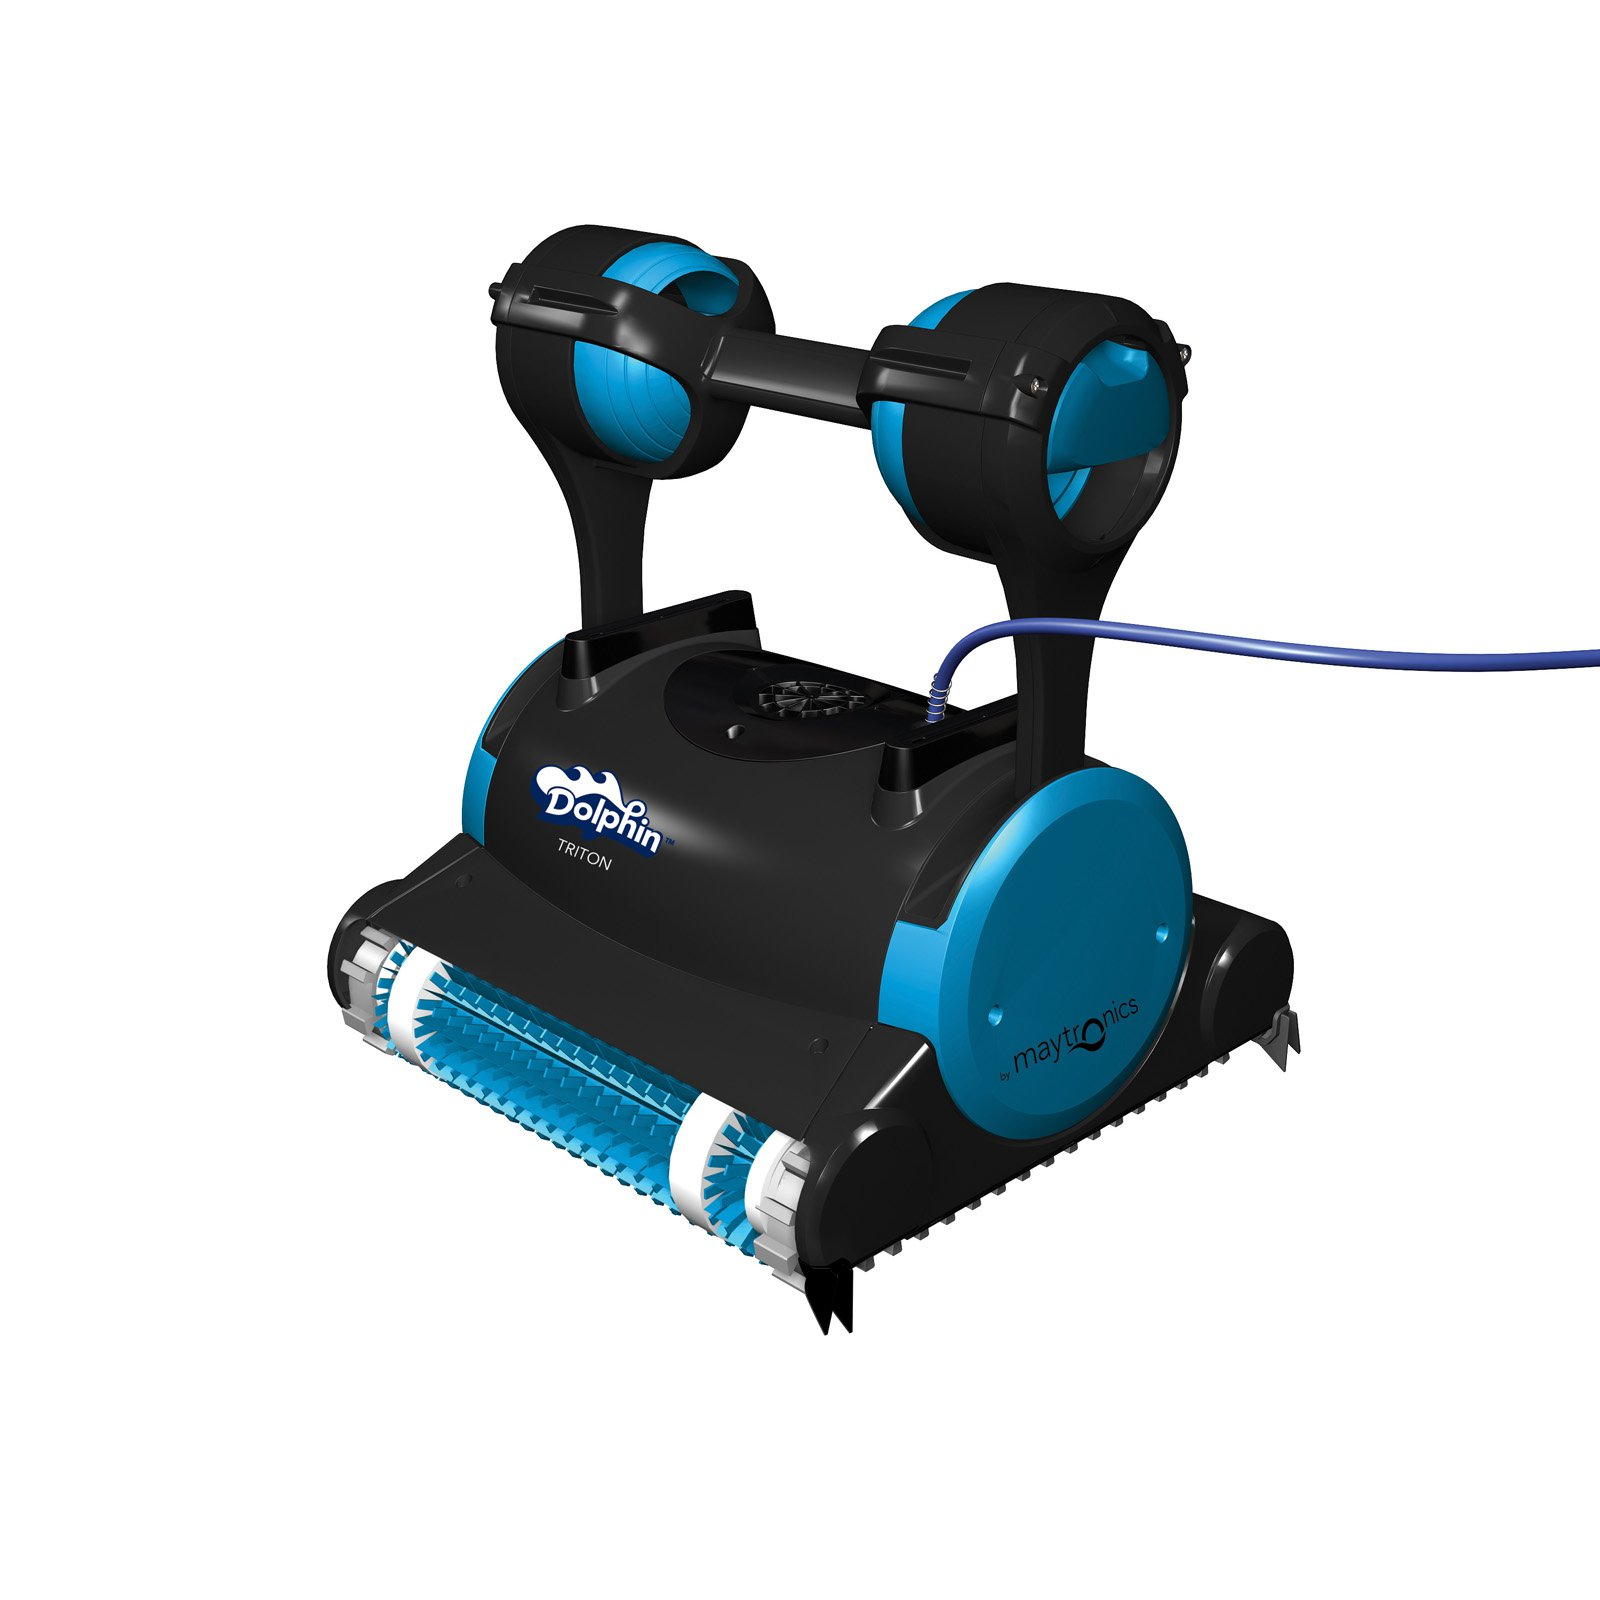 Dolphin Triton Robotic Pool Cleaner with Caddy and Swivel Cable